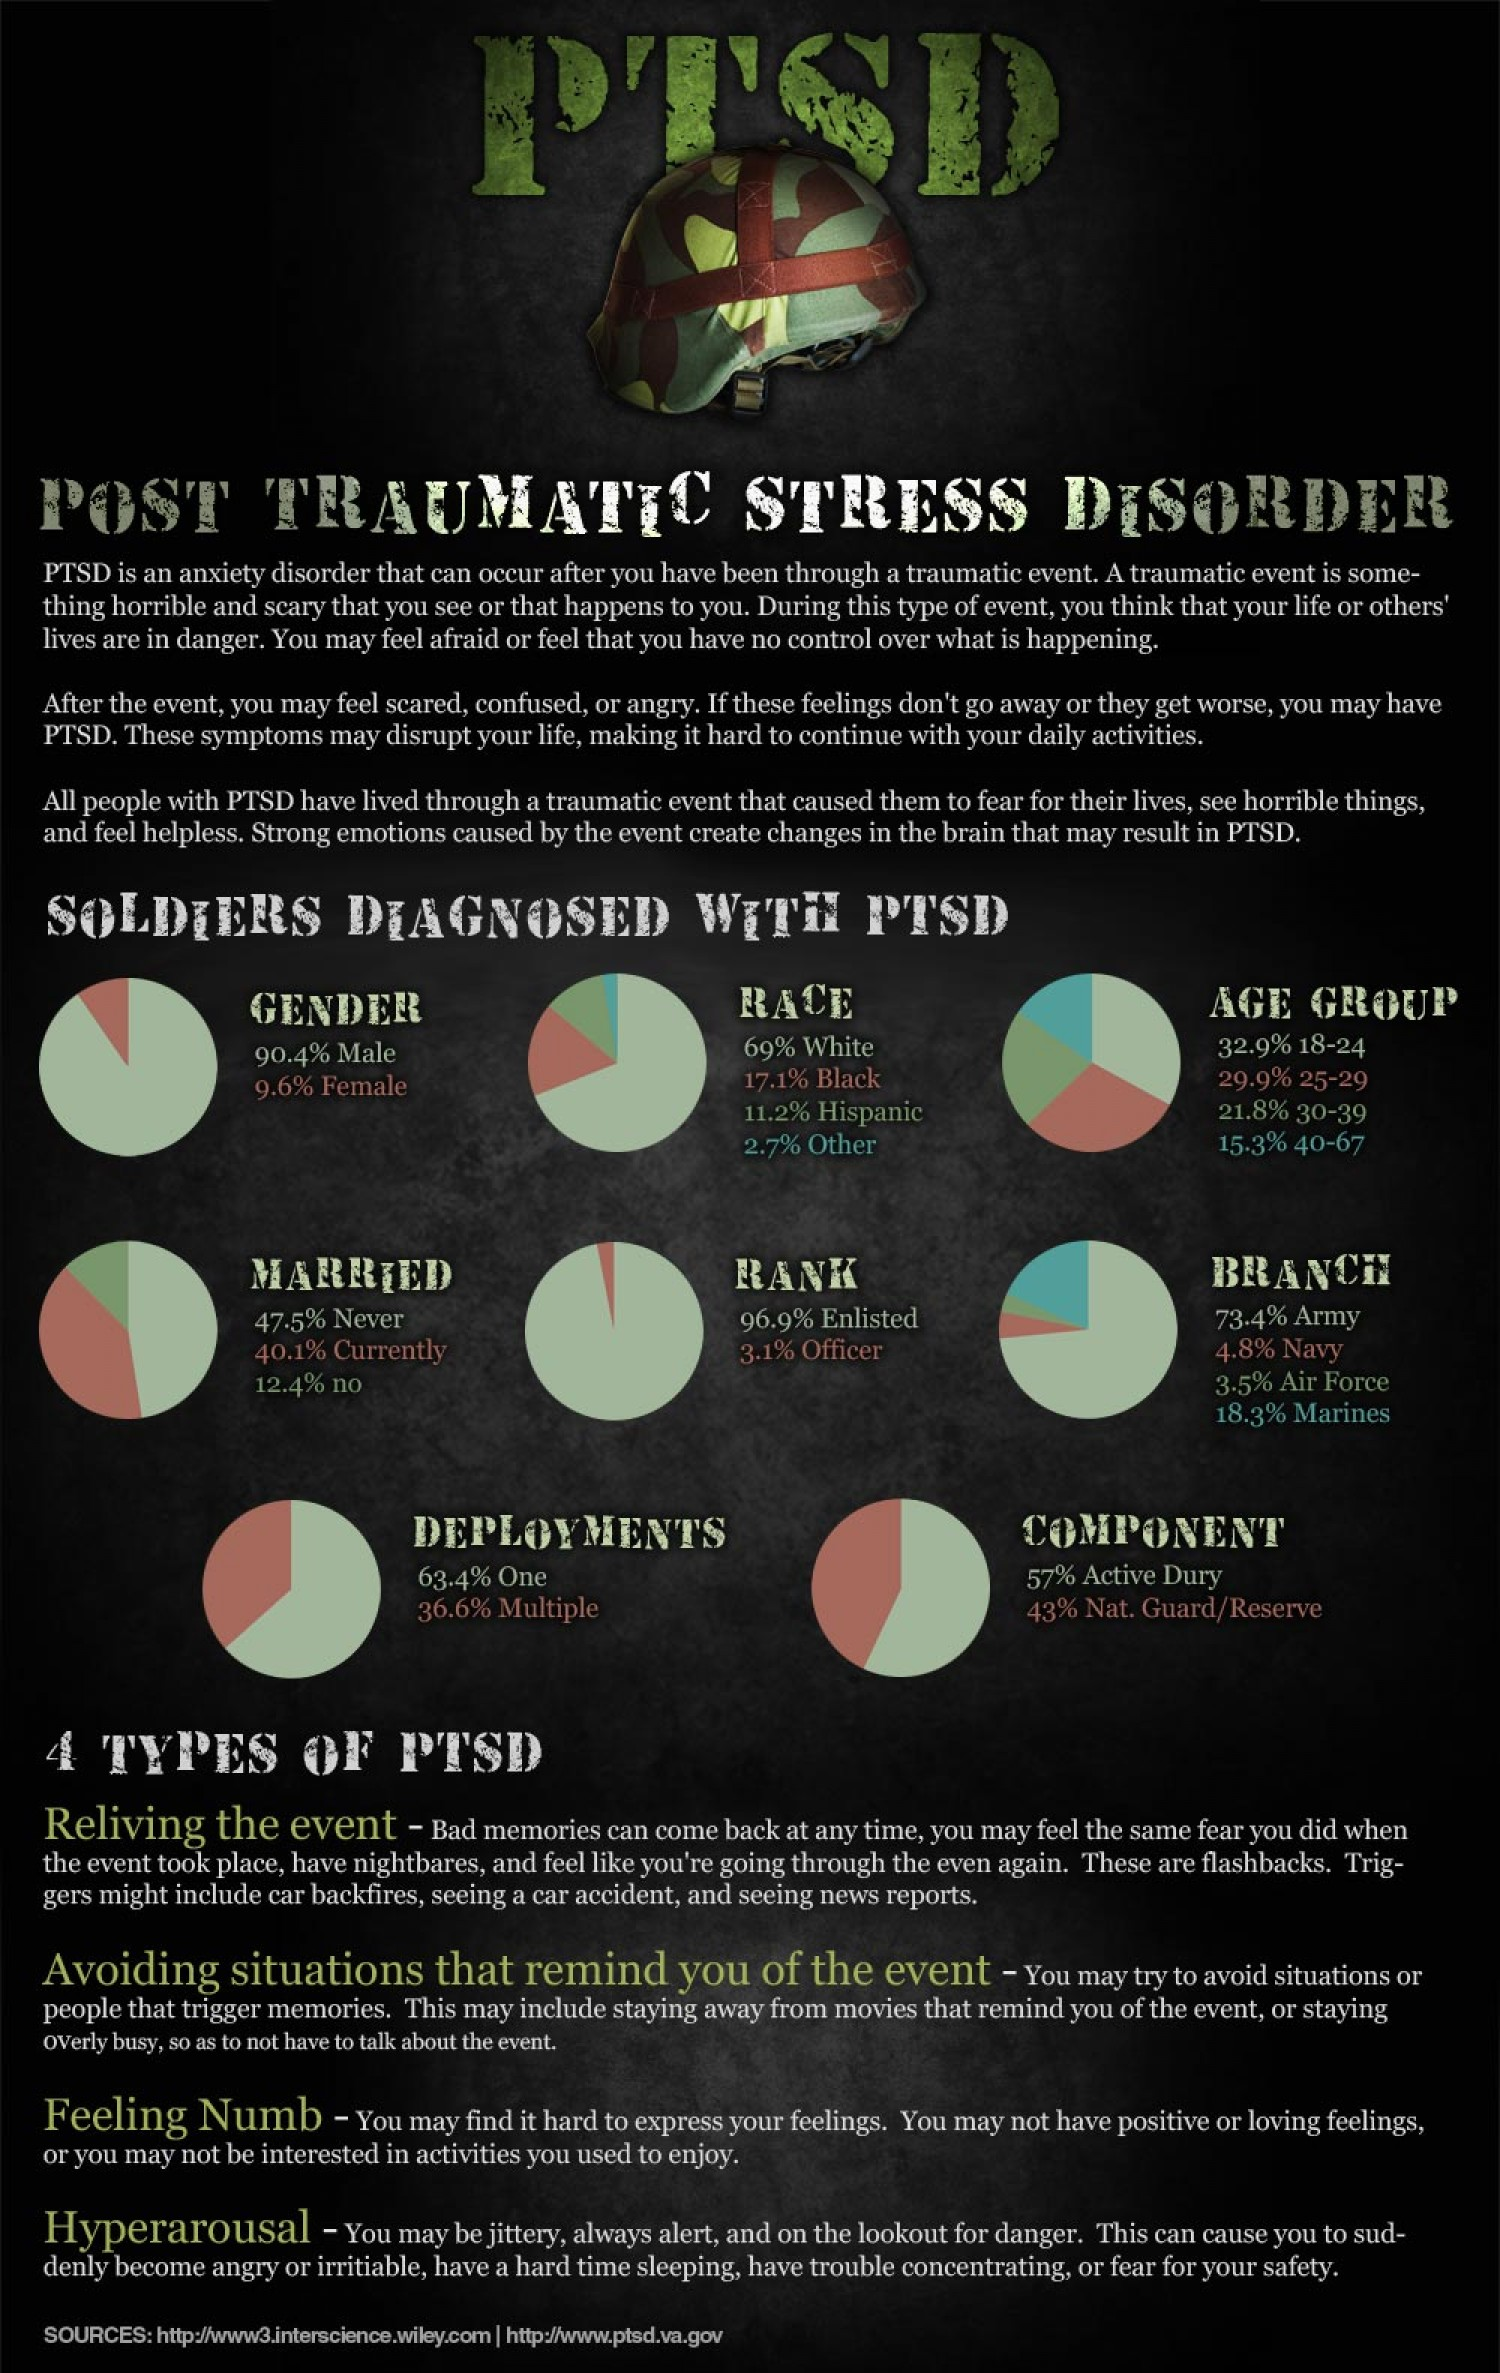 soldiers-post-traumatic-stress-disorder-ptsd_502911985fdb3_w1500